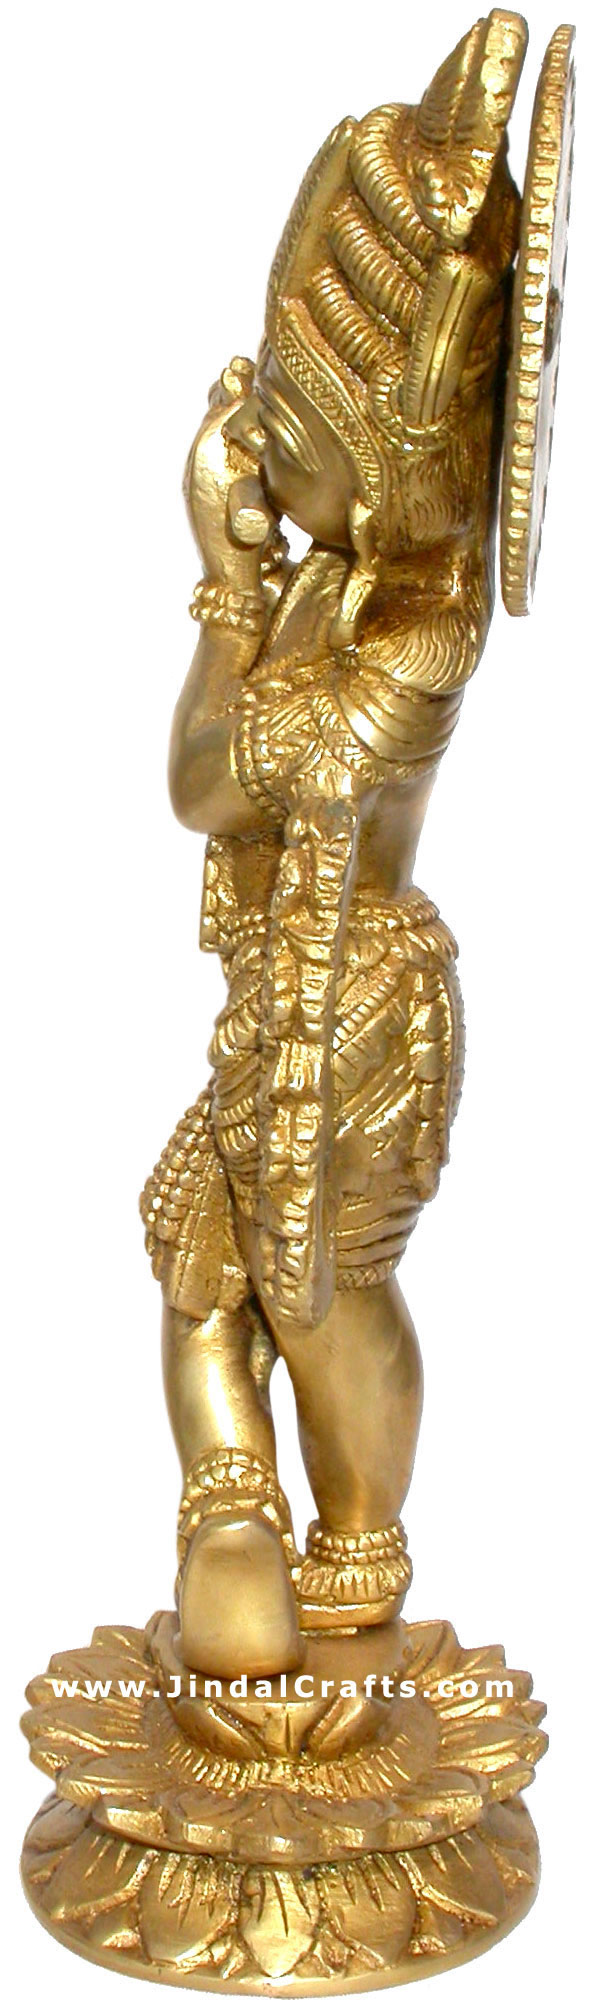 Indian Lord Krishna Hindu Religious Handicraft Art